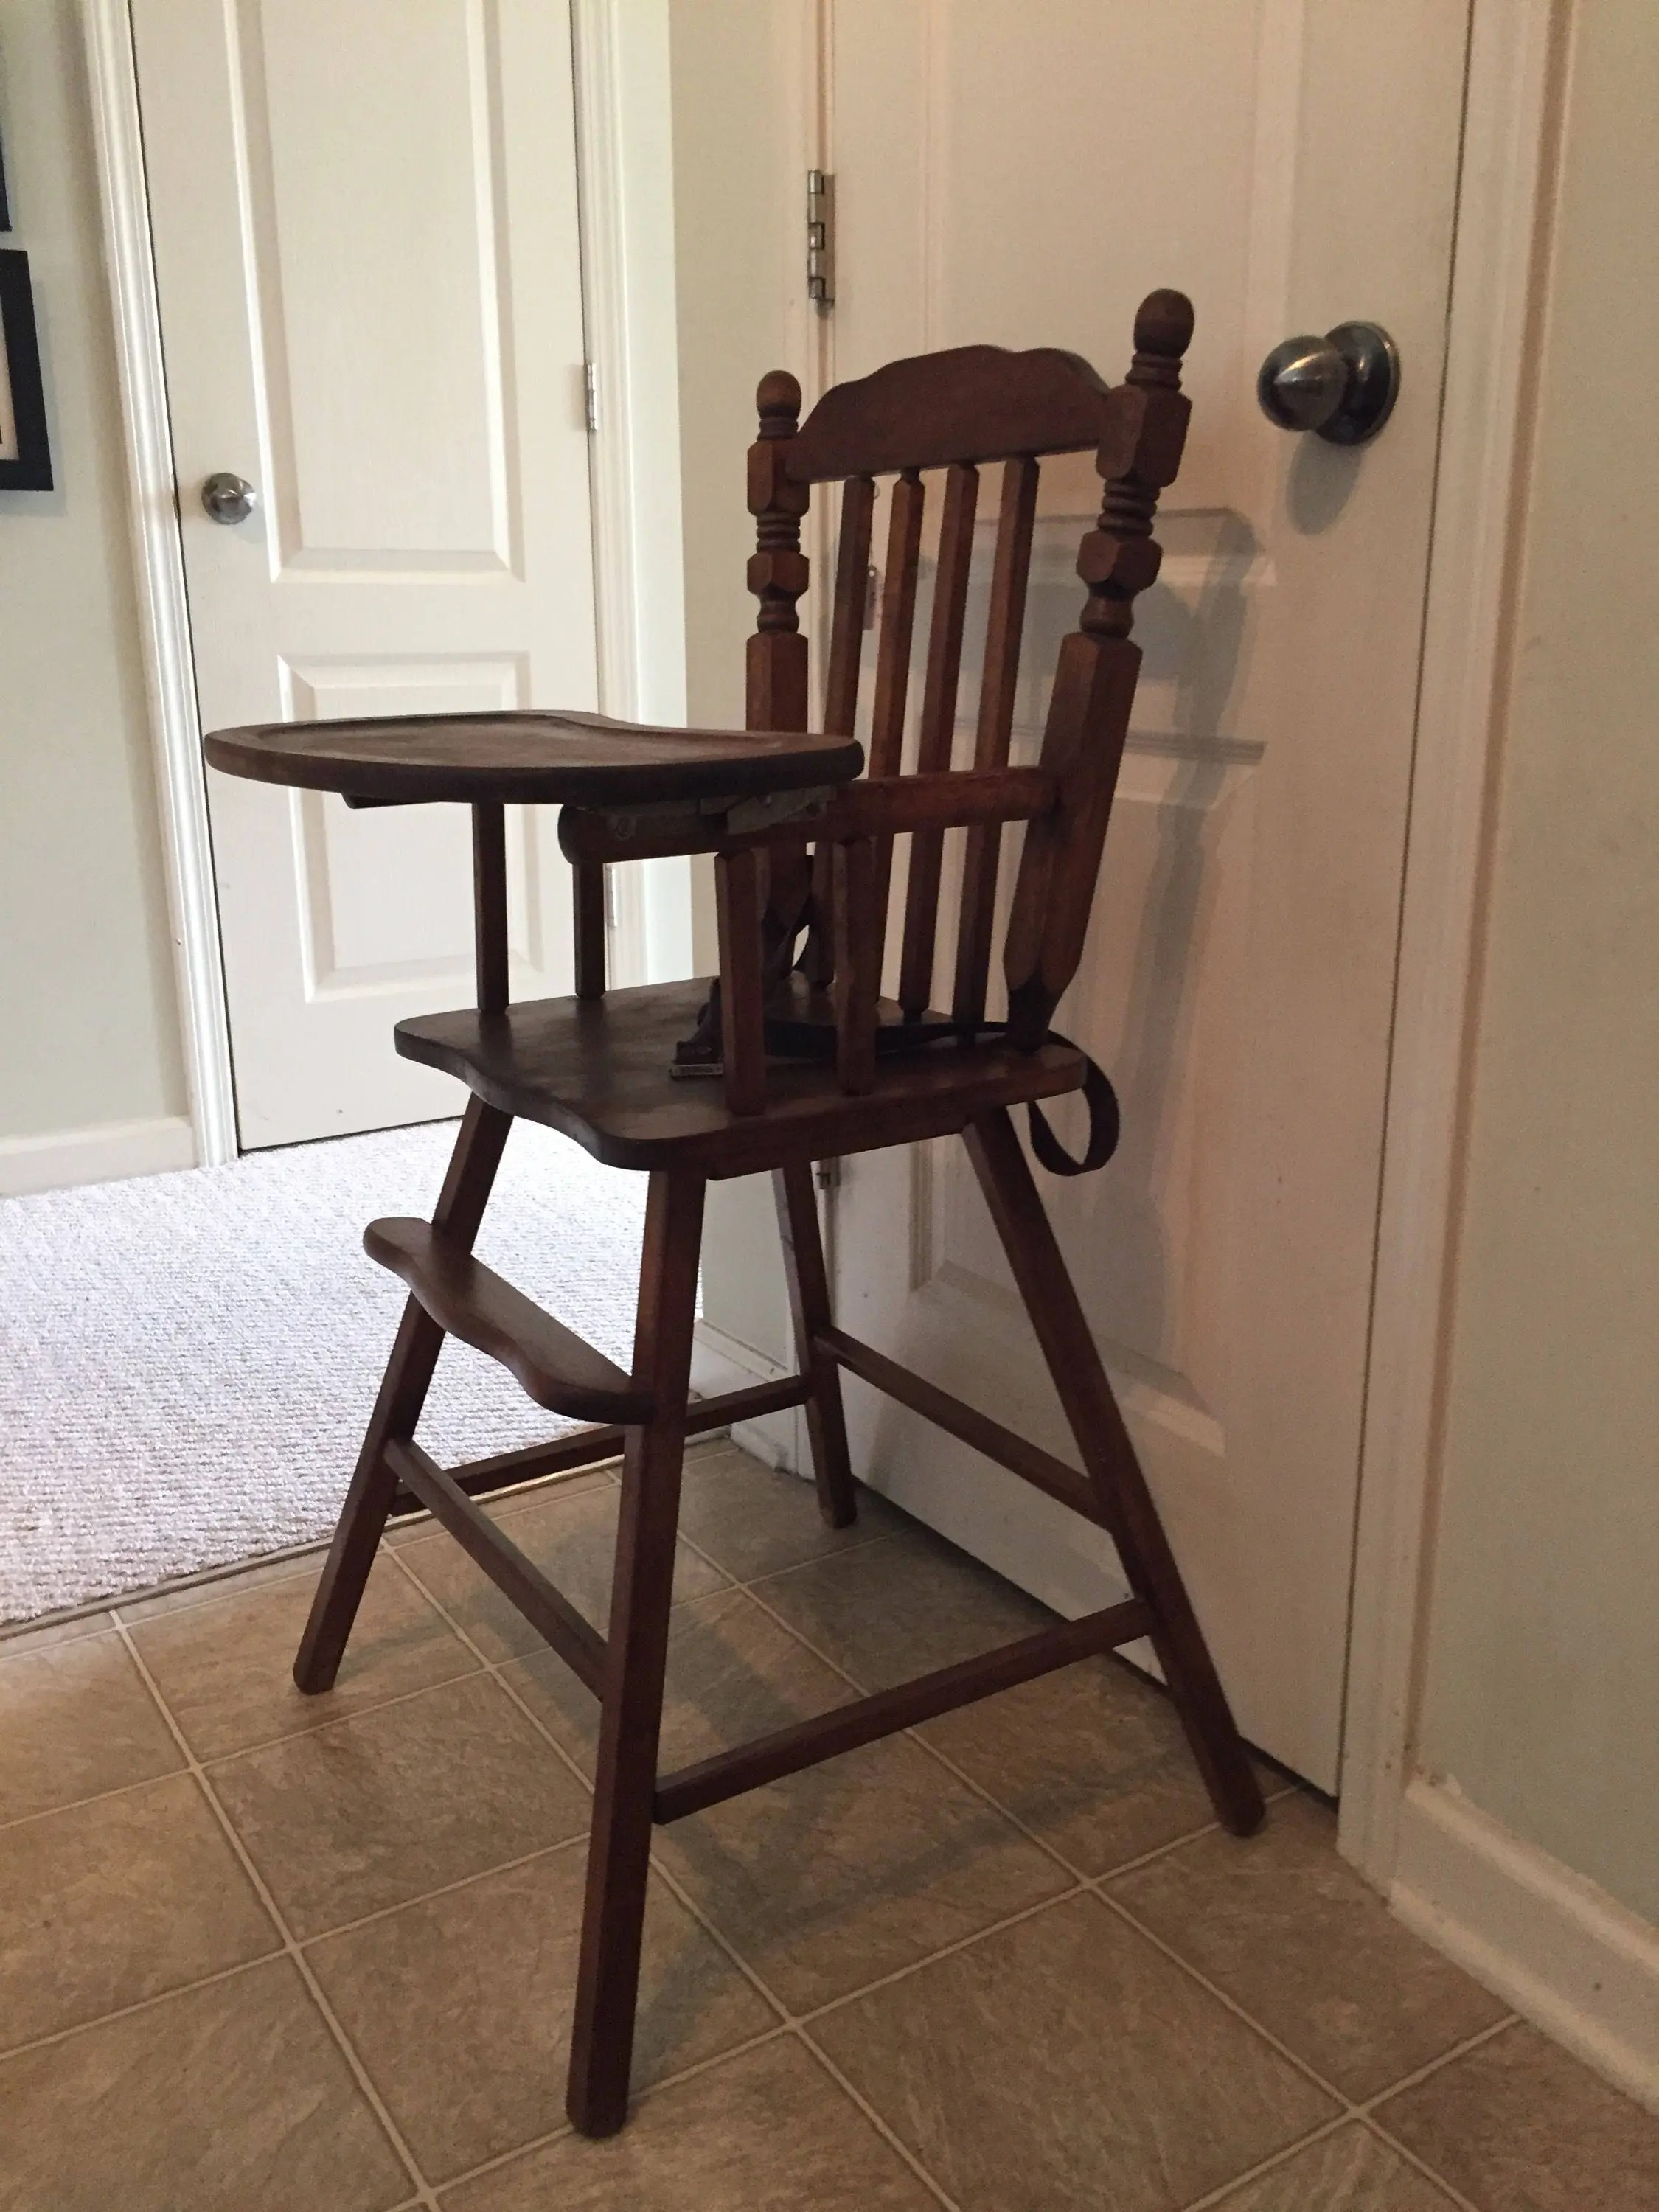 vintage wood high chair preschool tables and chairs clearance etsy fully refinished wooden jenny lind antique highchair